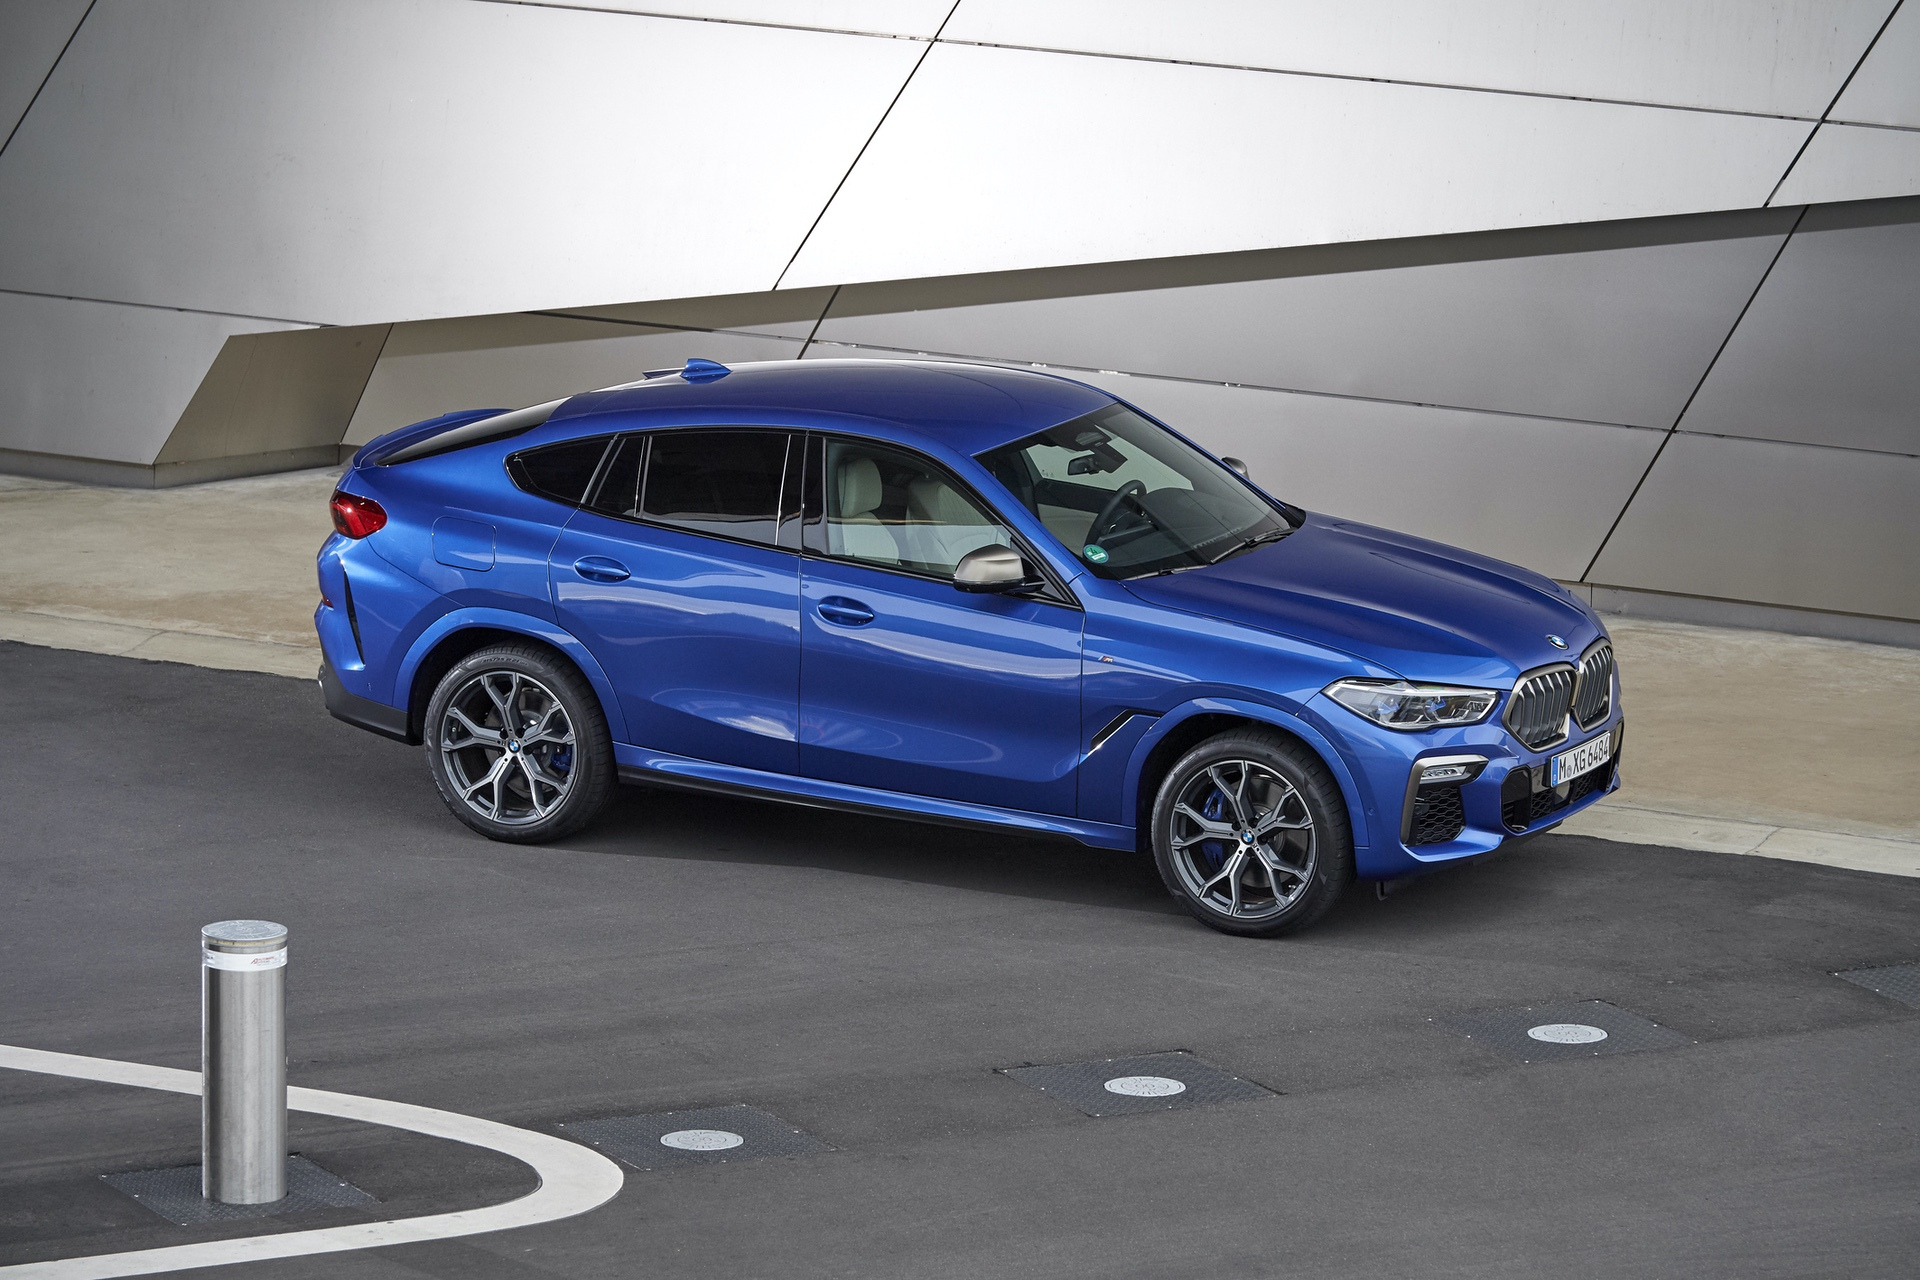 Car and Driver Instrumented Test: BMW X6 M50i Faster than Advertised